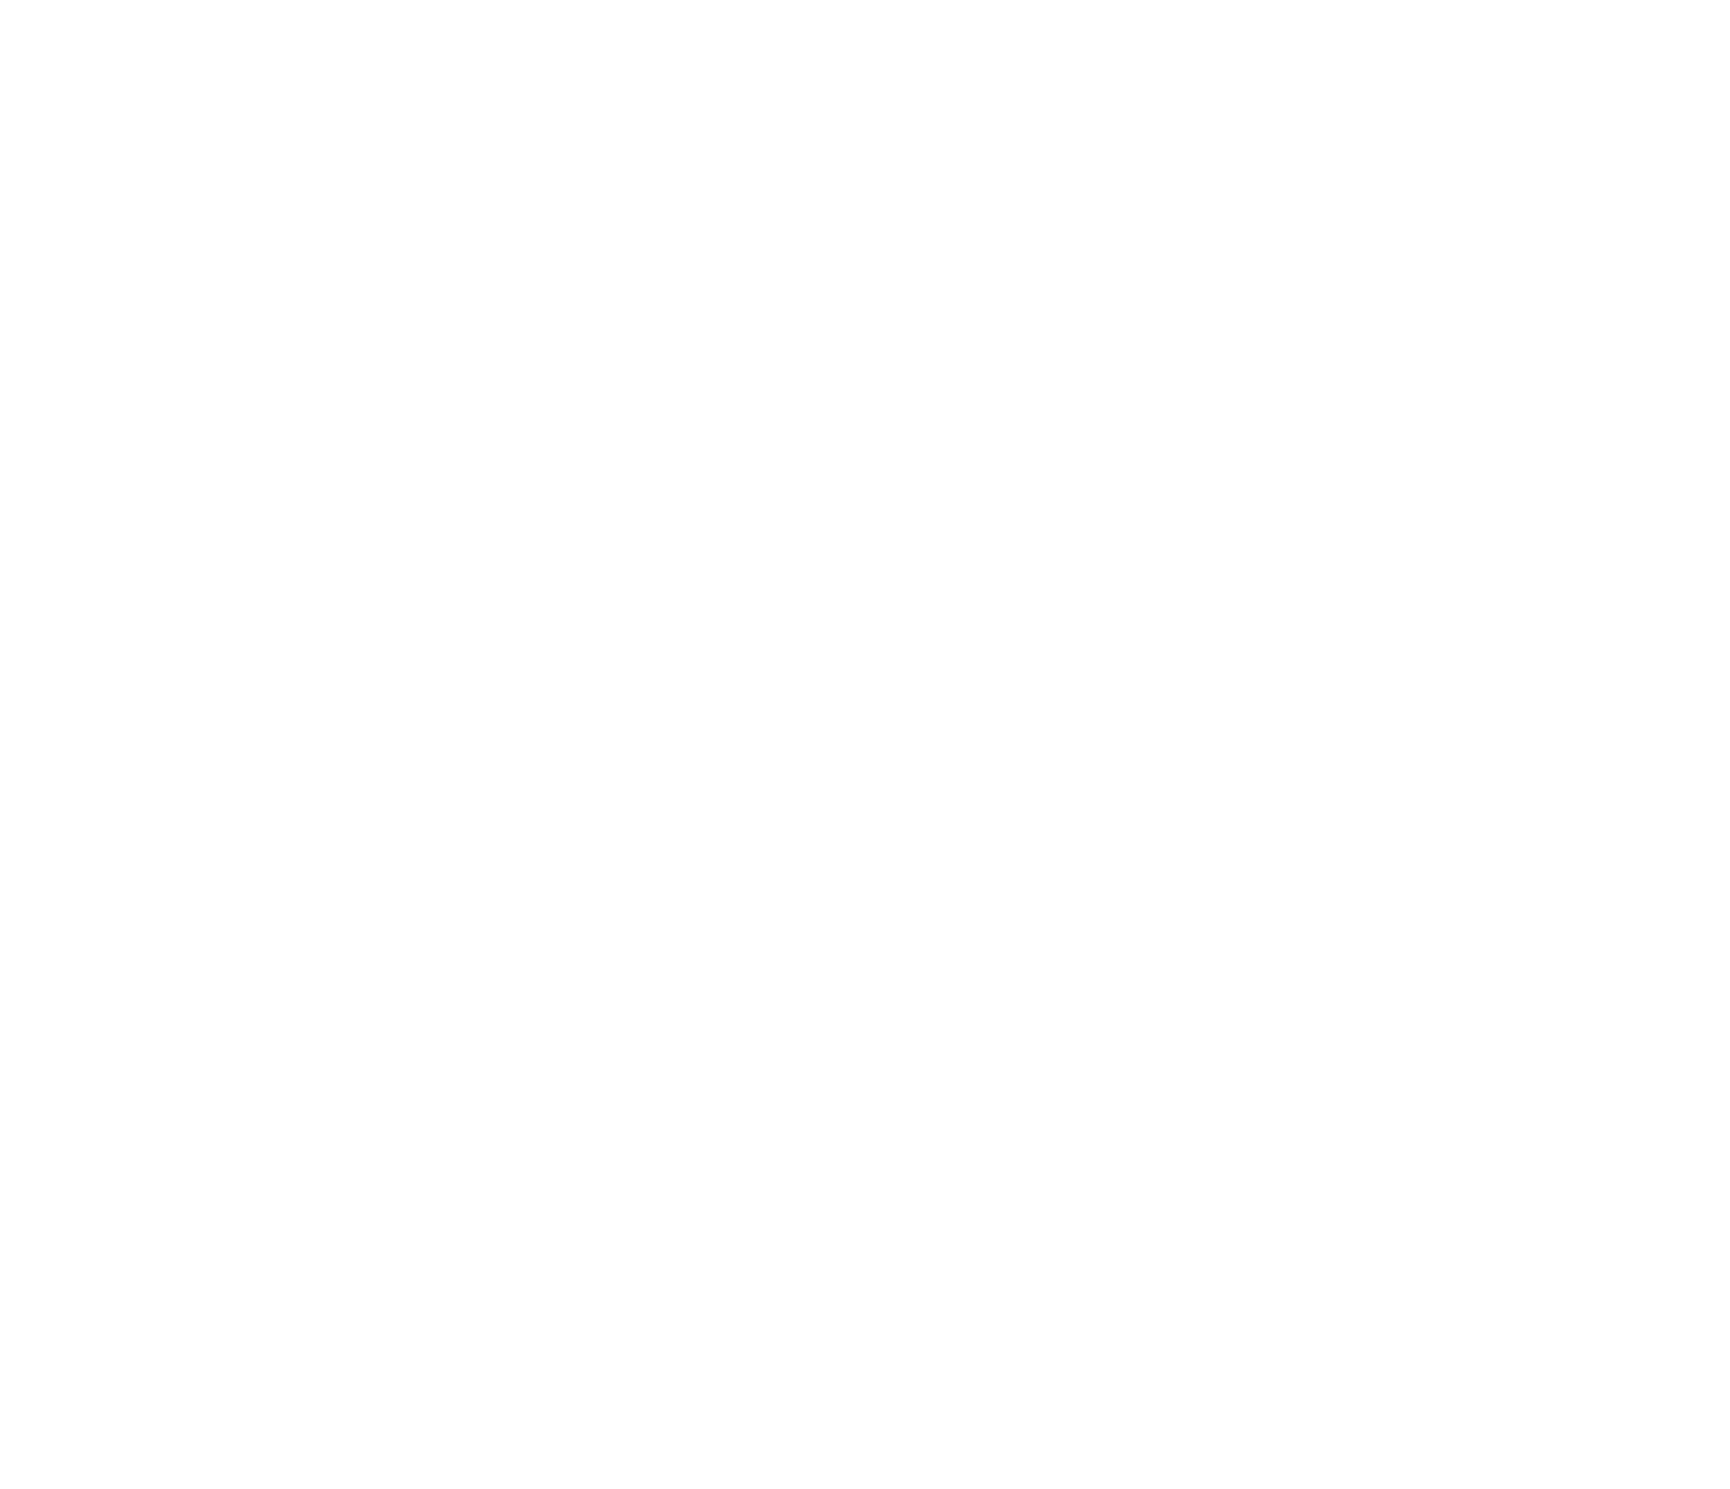 Junction Produce